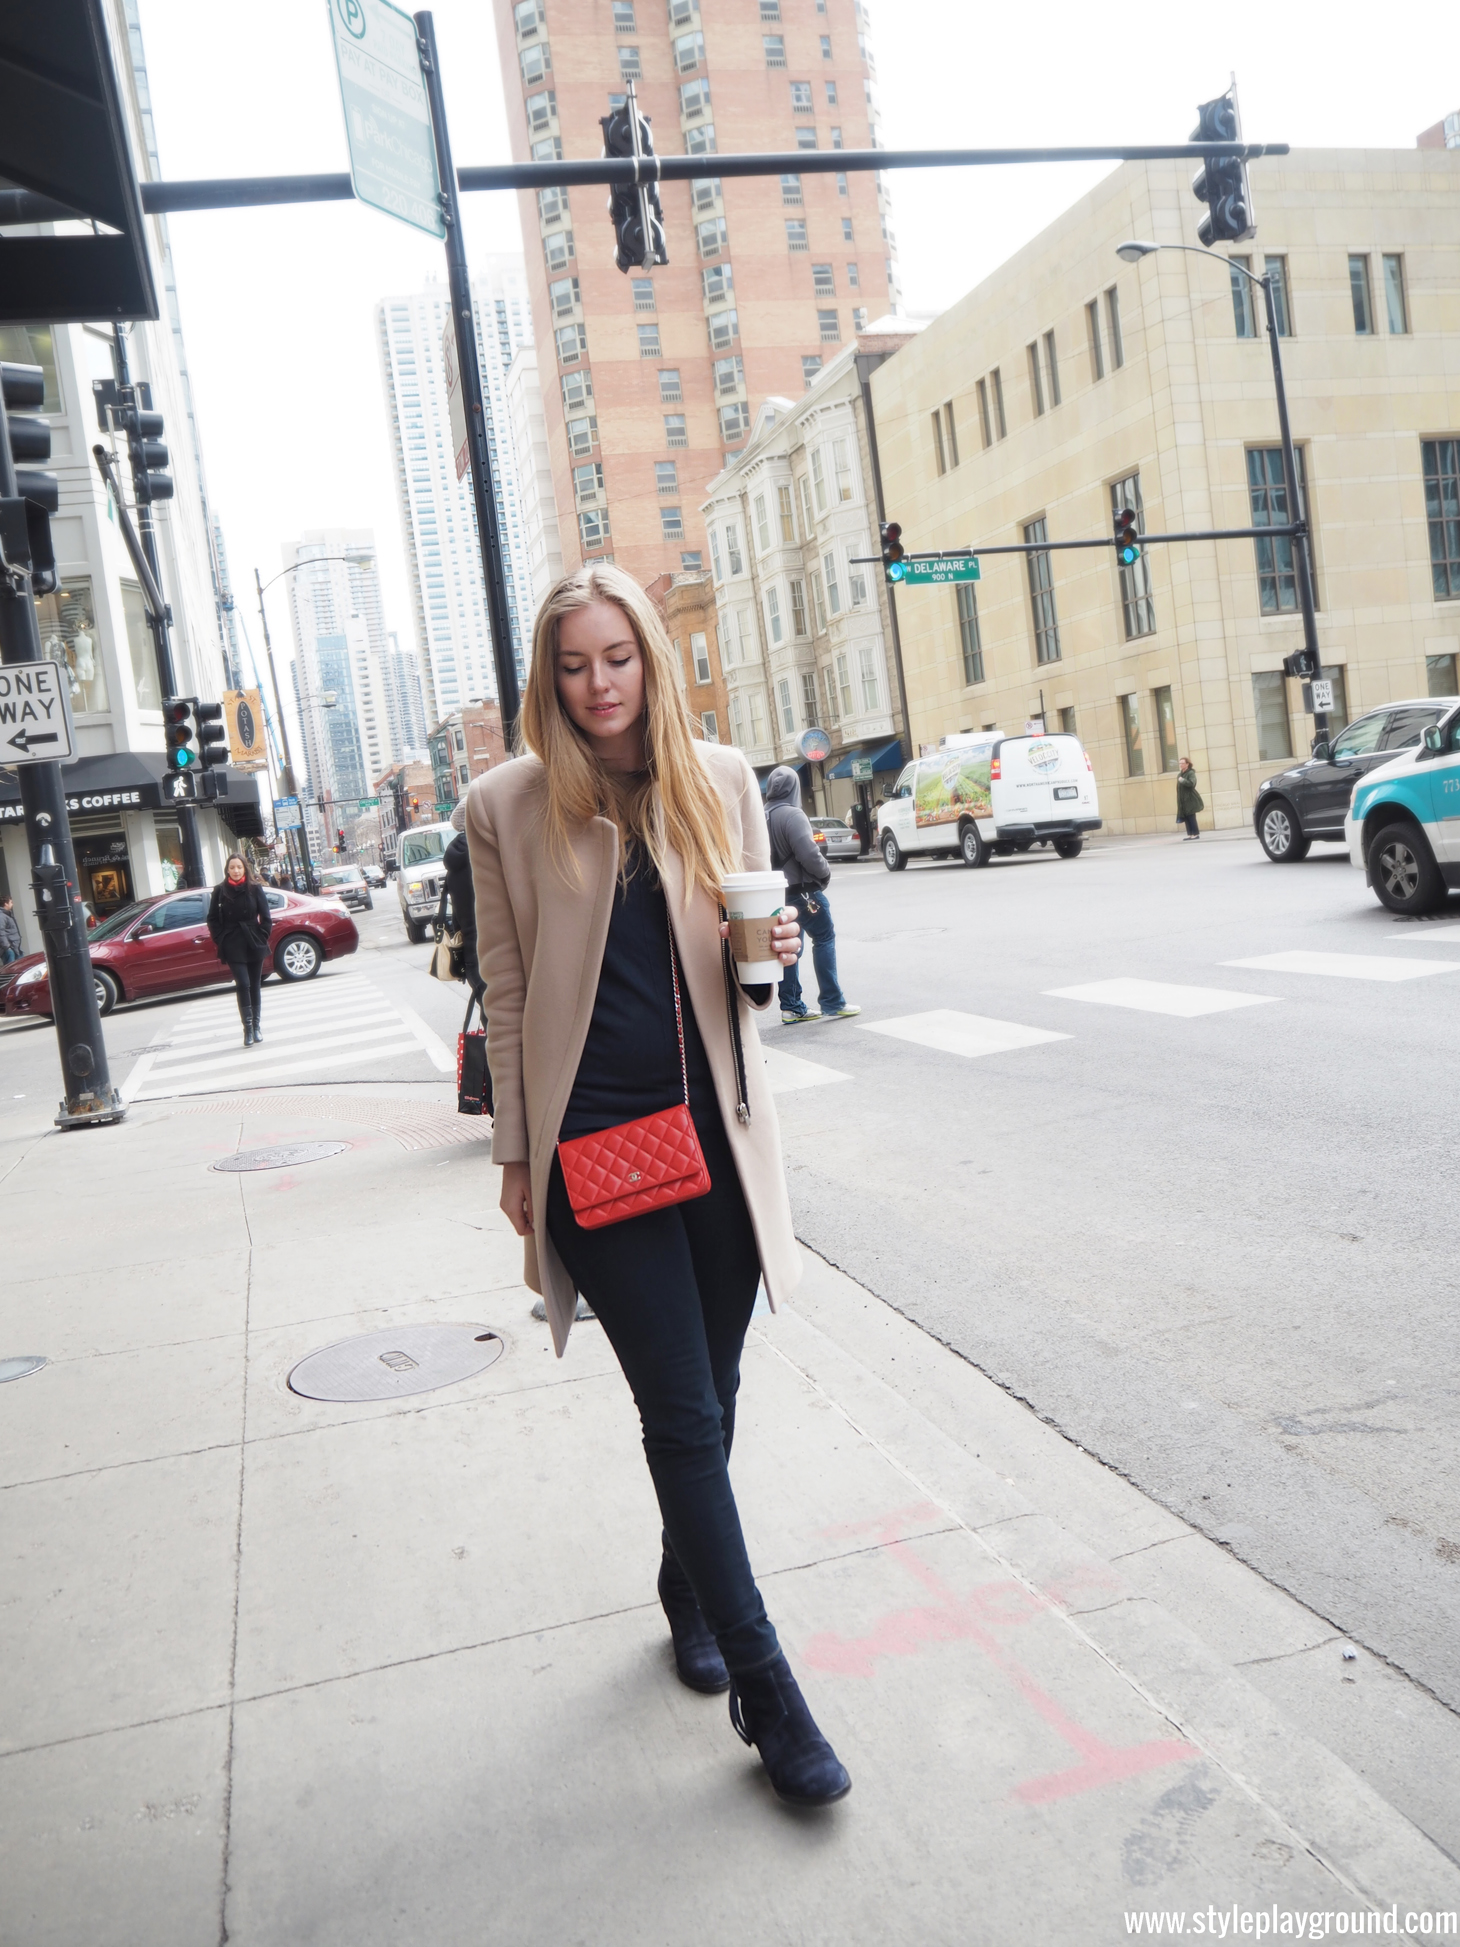 Axelle Blanpain of Style playground is wearing a Zara coat, Mango sweater, American Eagle jeggings, Acne Pistol boots & Chanel WOC